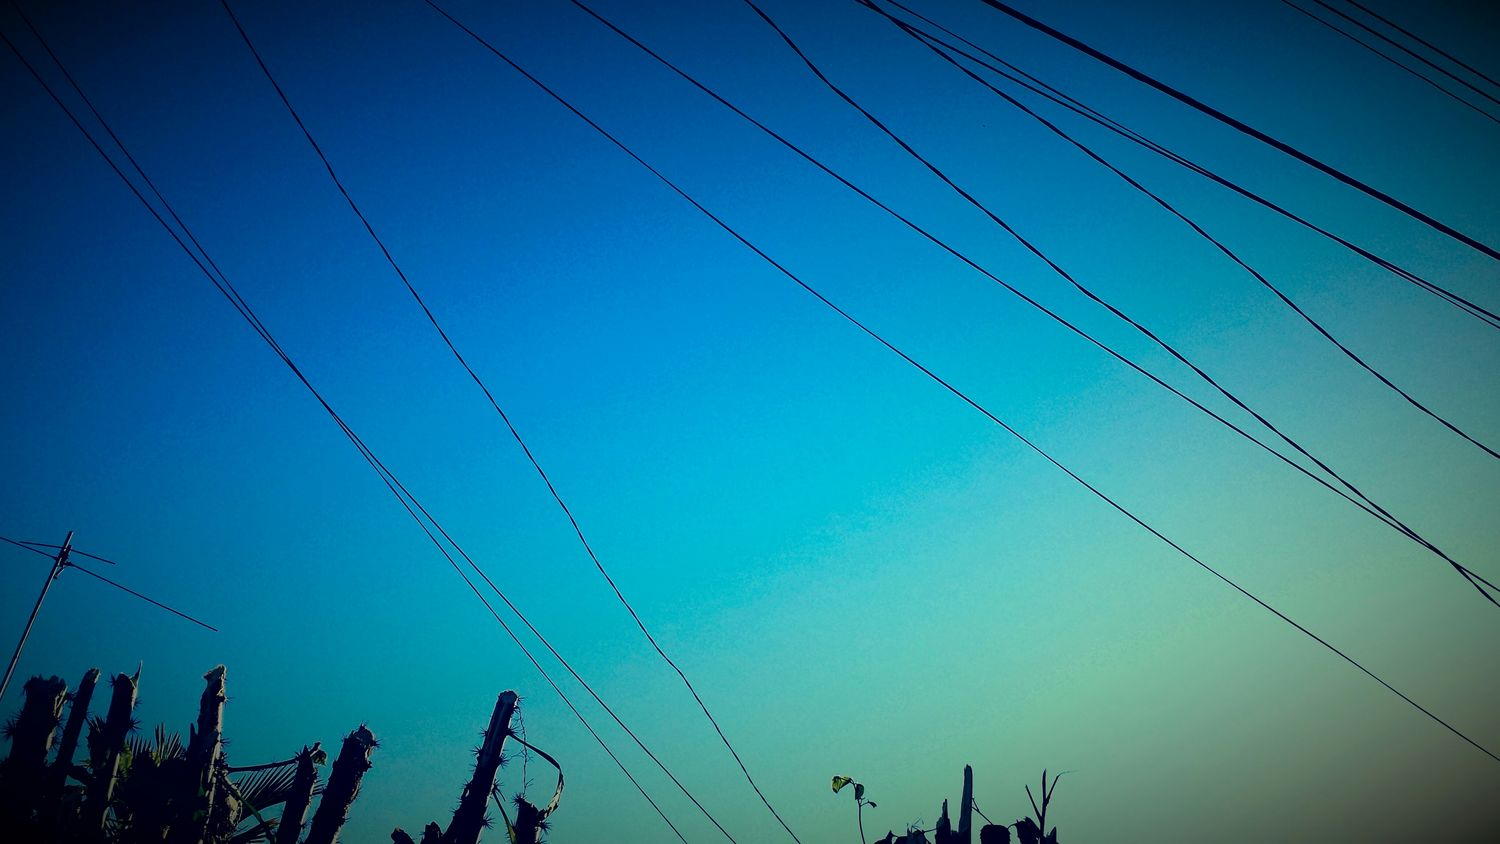 Cables & Skies Check This Out Relaxing Vintage S4 Sunrise